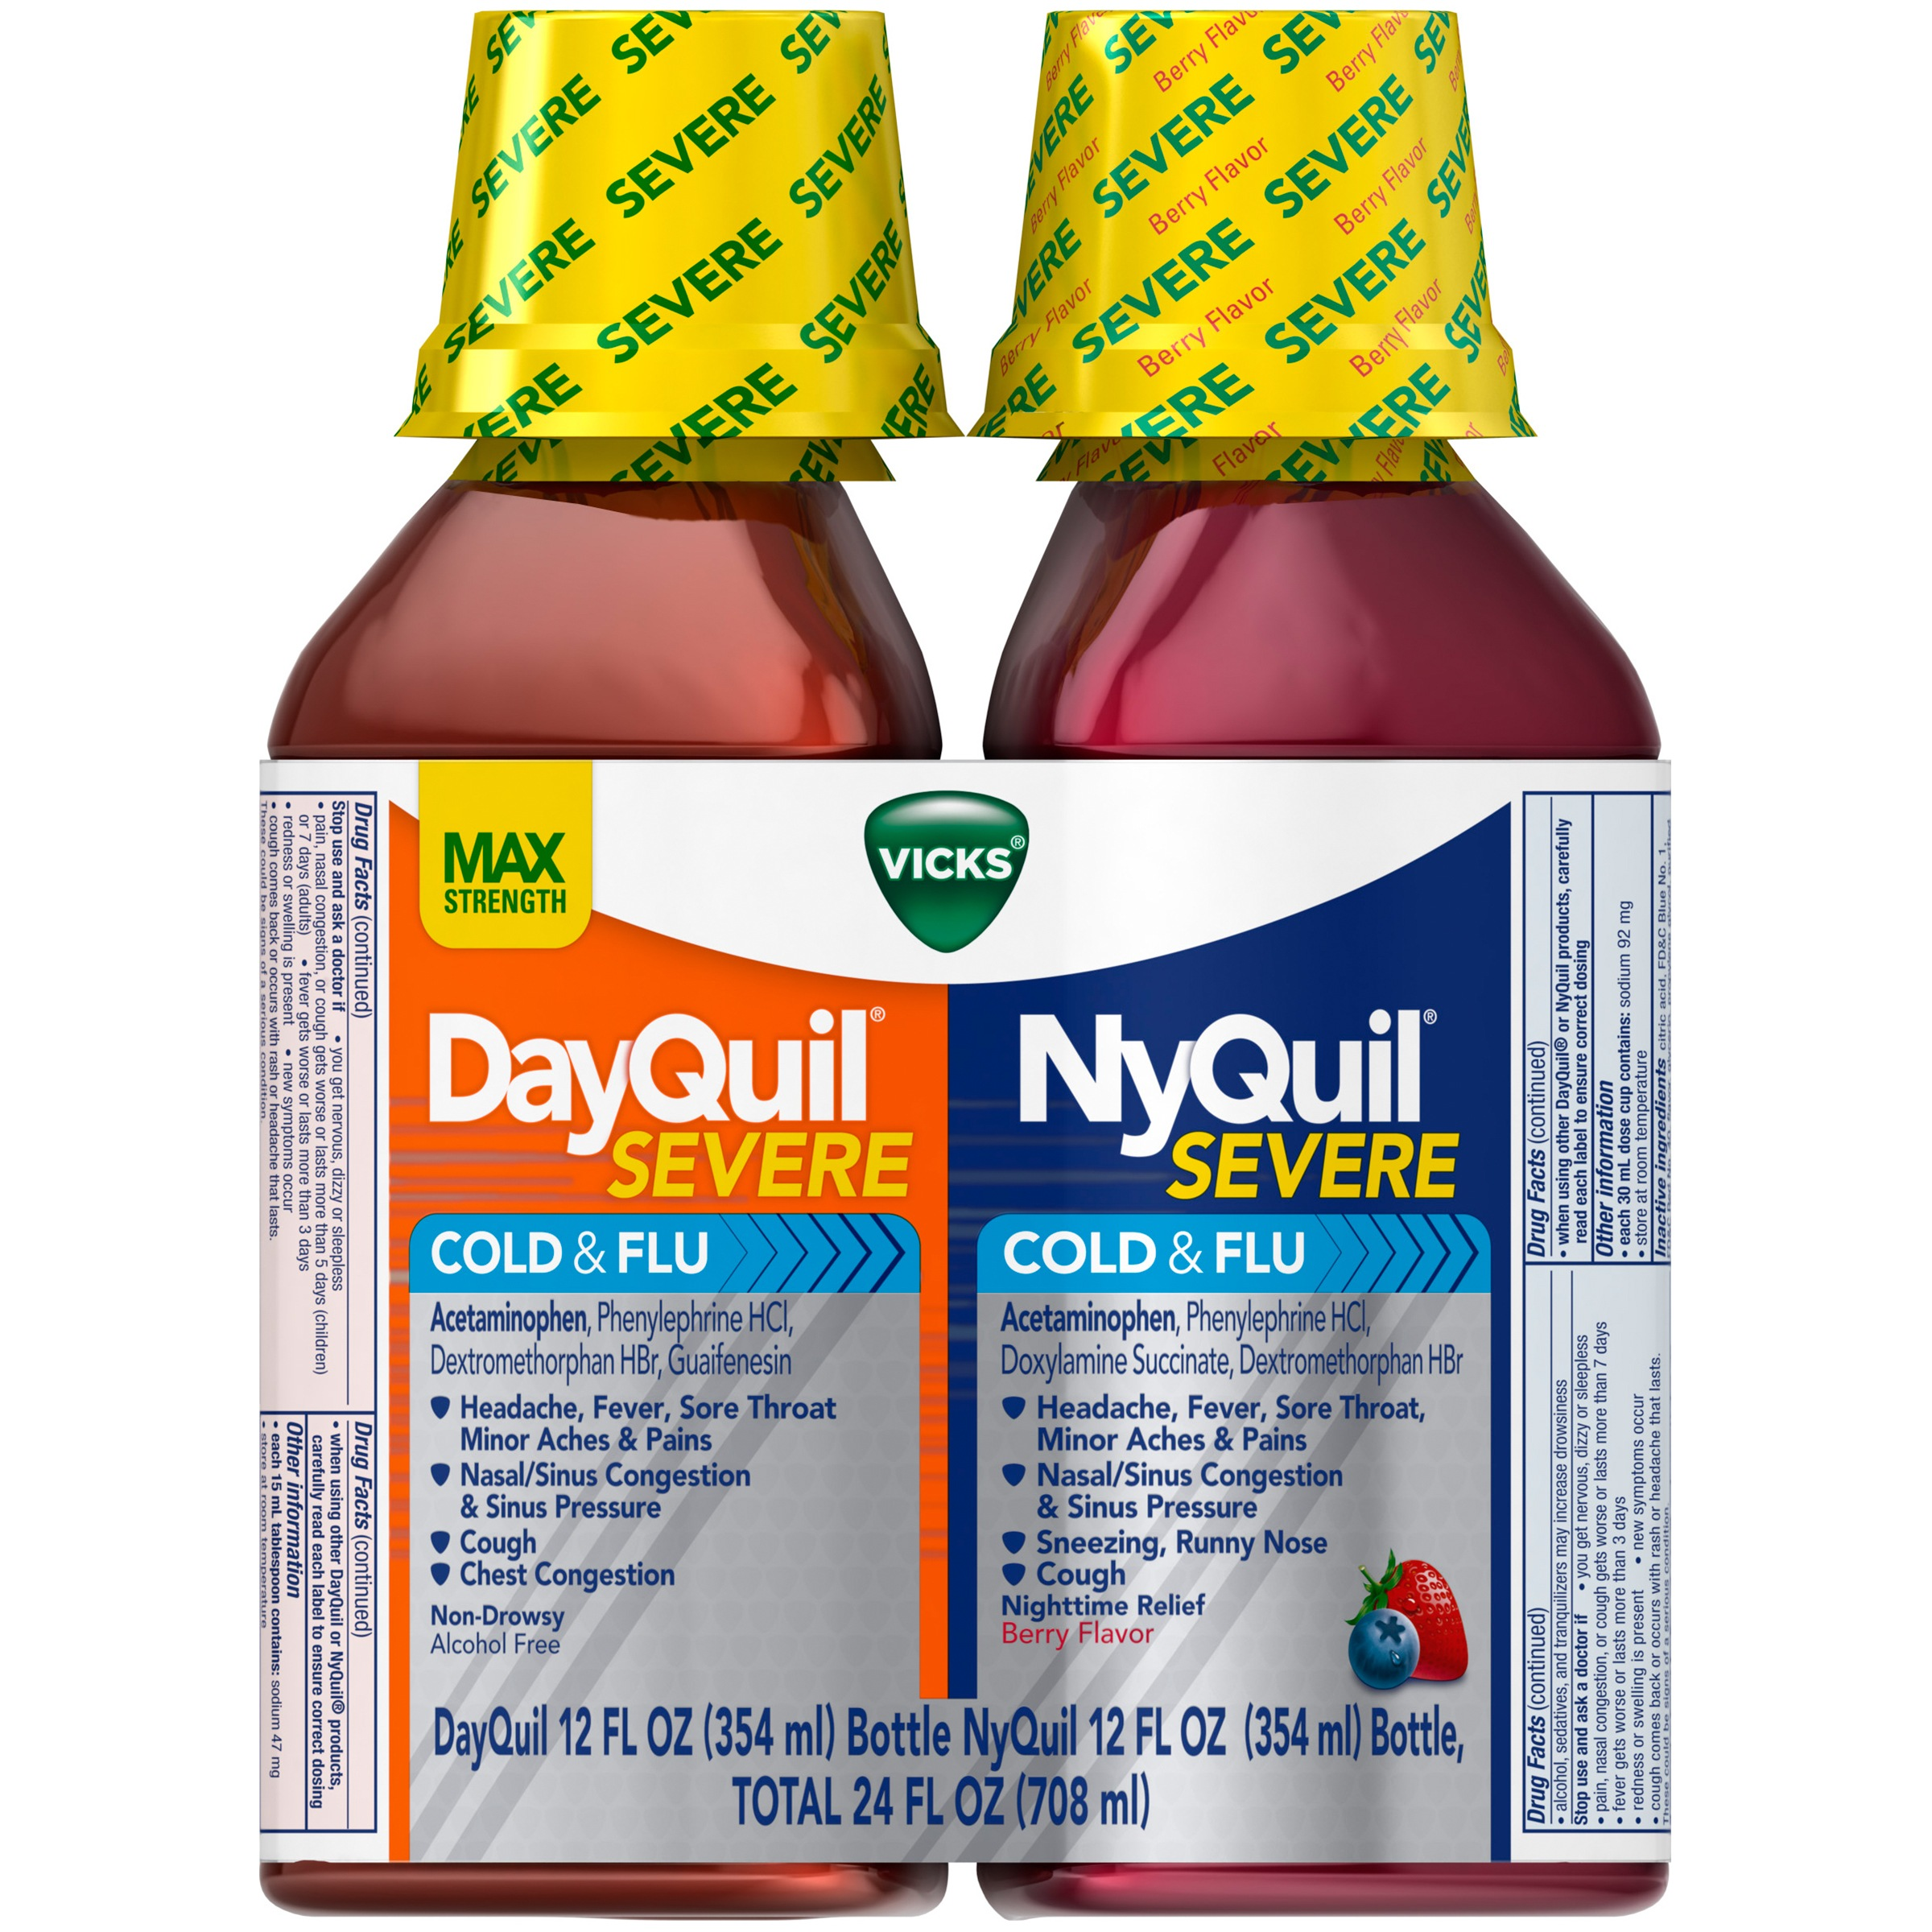 Vicks DayQuil Severe Cold & Flu and NyQuil Severe Cold & Flu Nighttime Relief Liquid Twin Pack